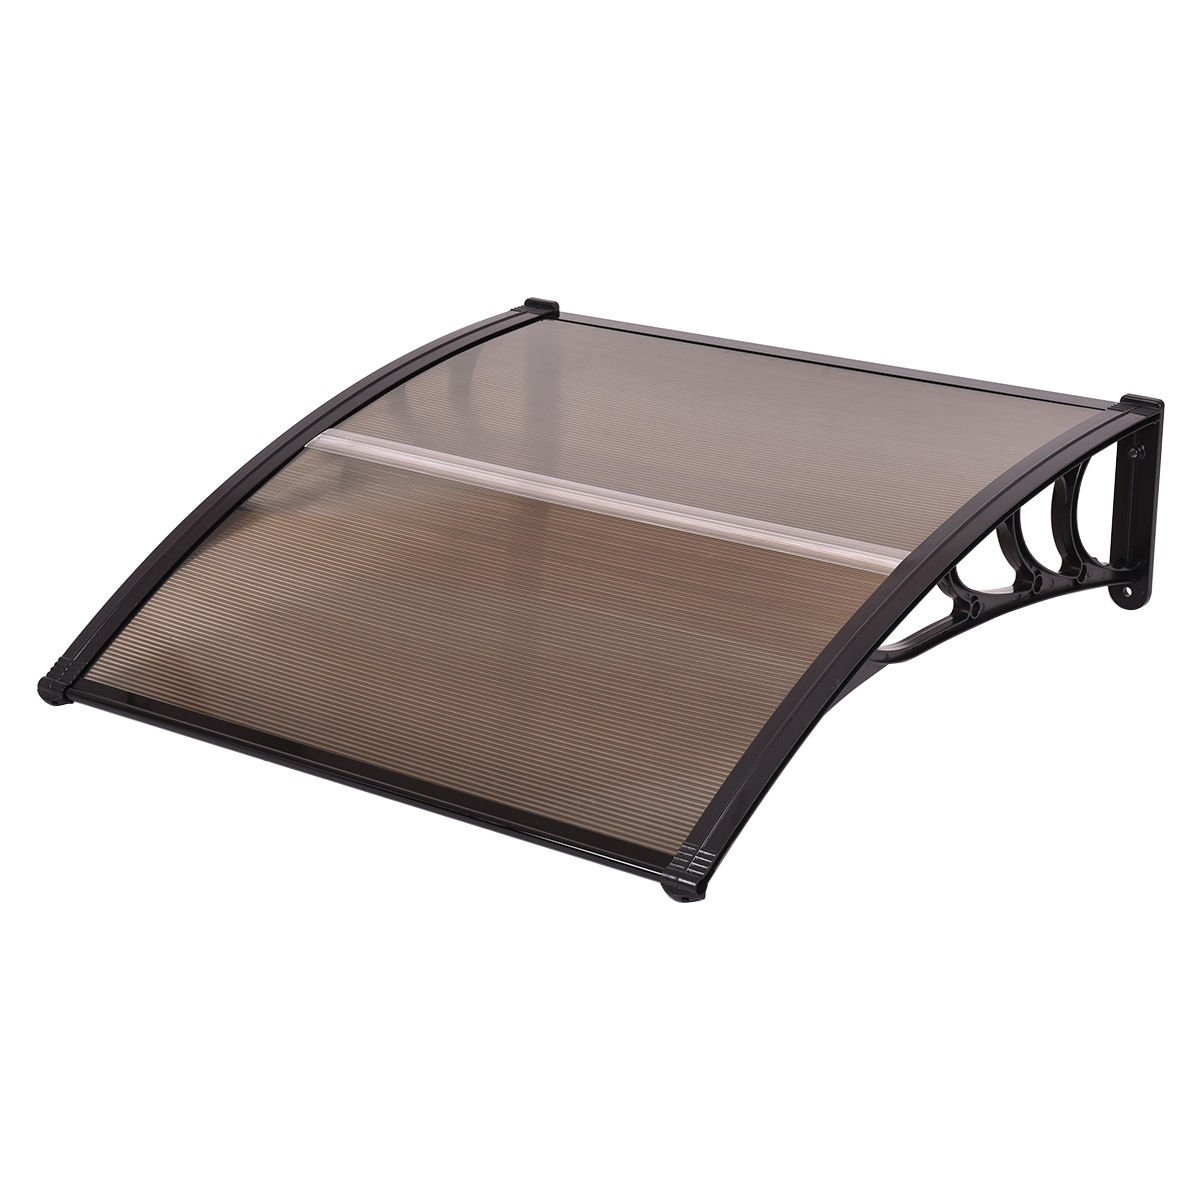 Tangkula Window Polycarbonate Outdoor shetter